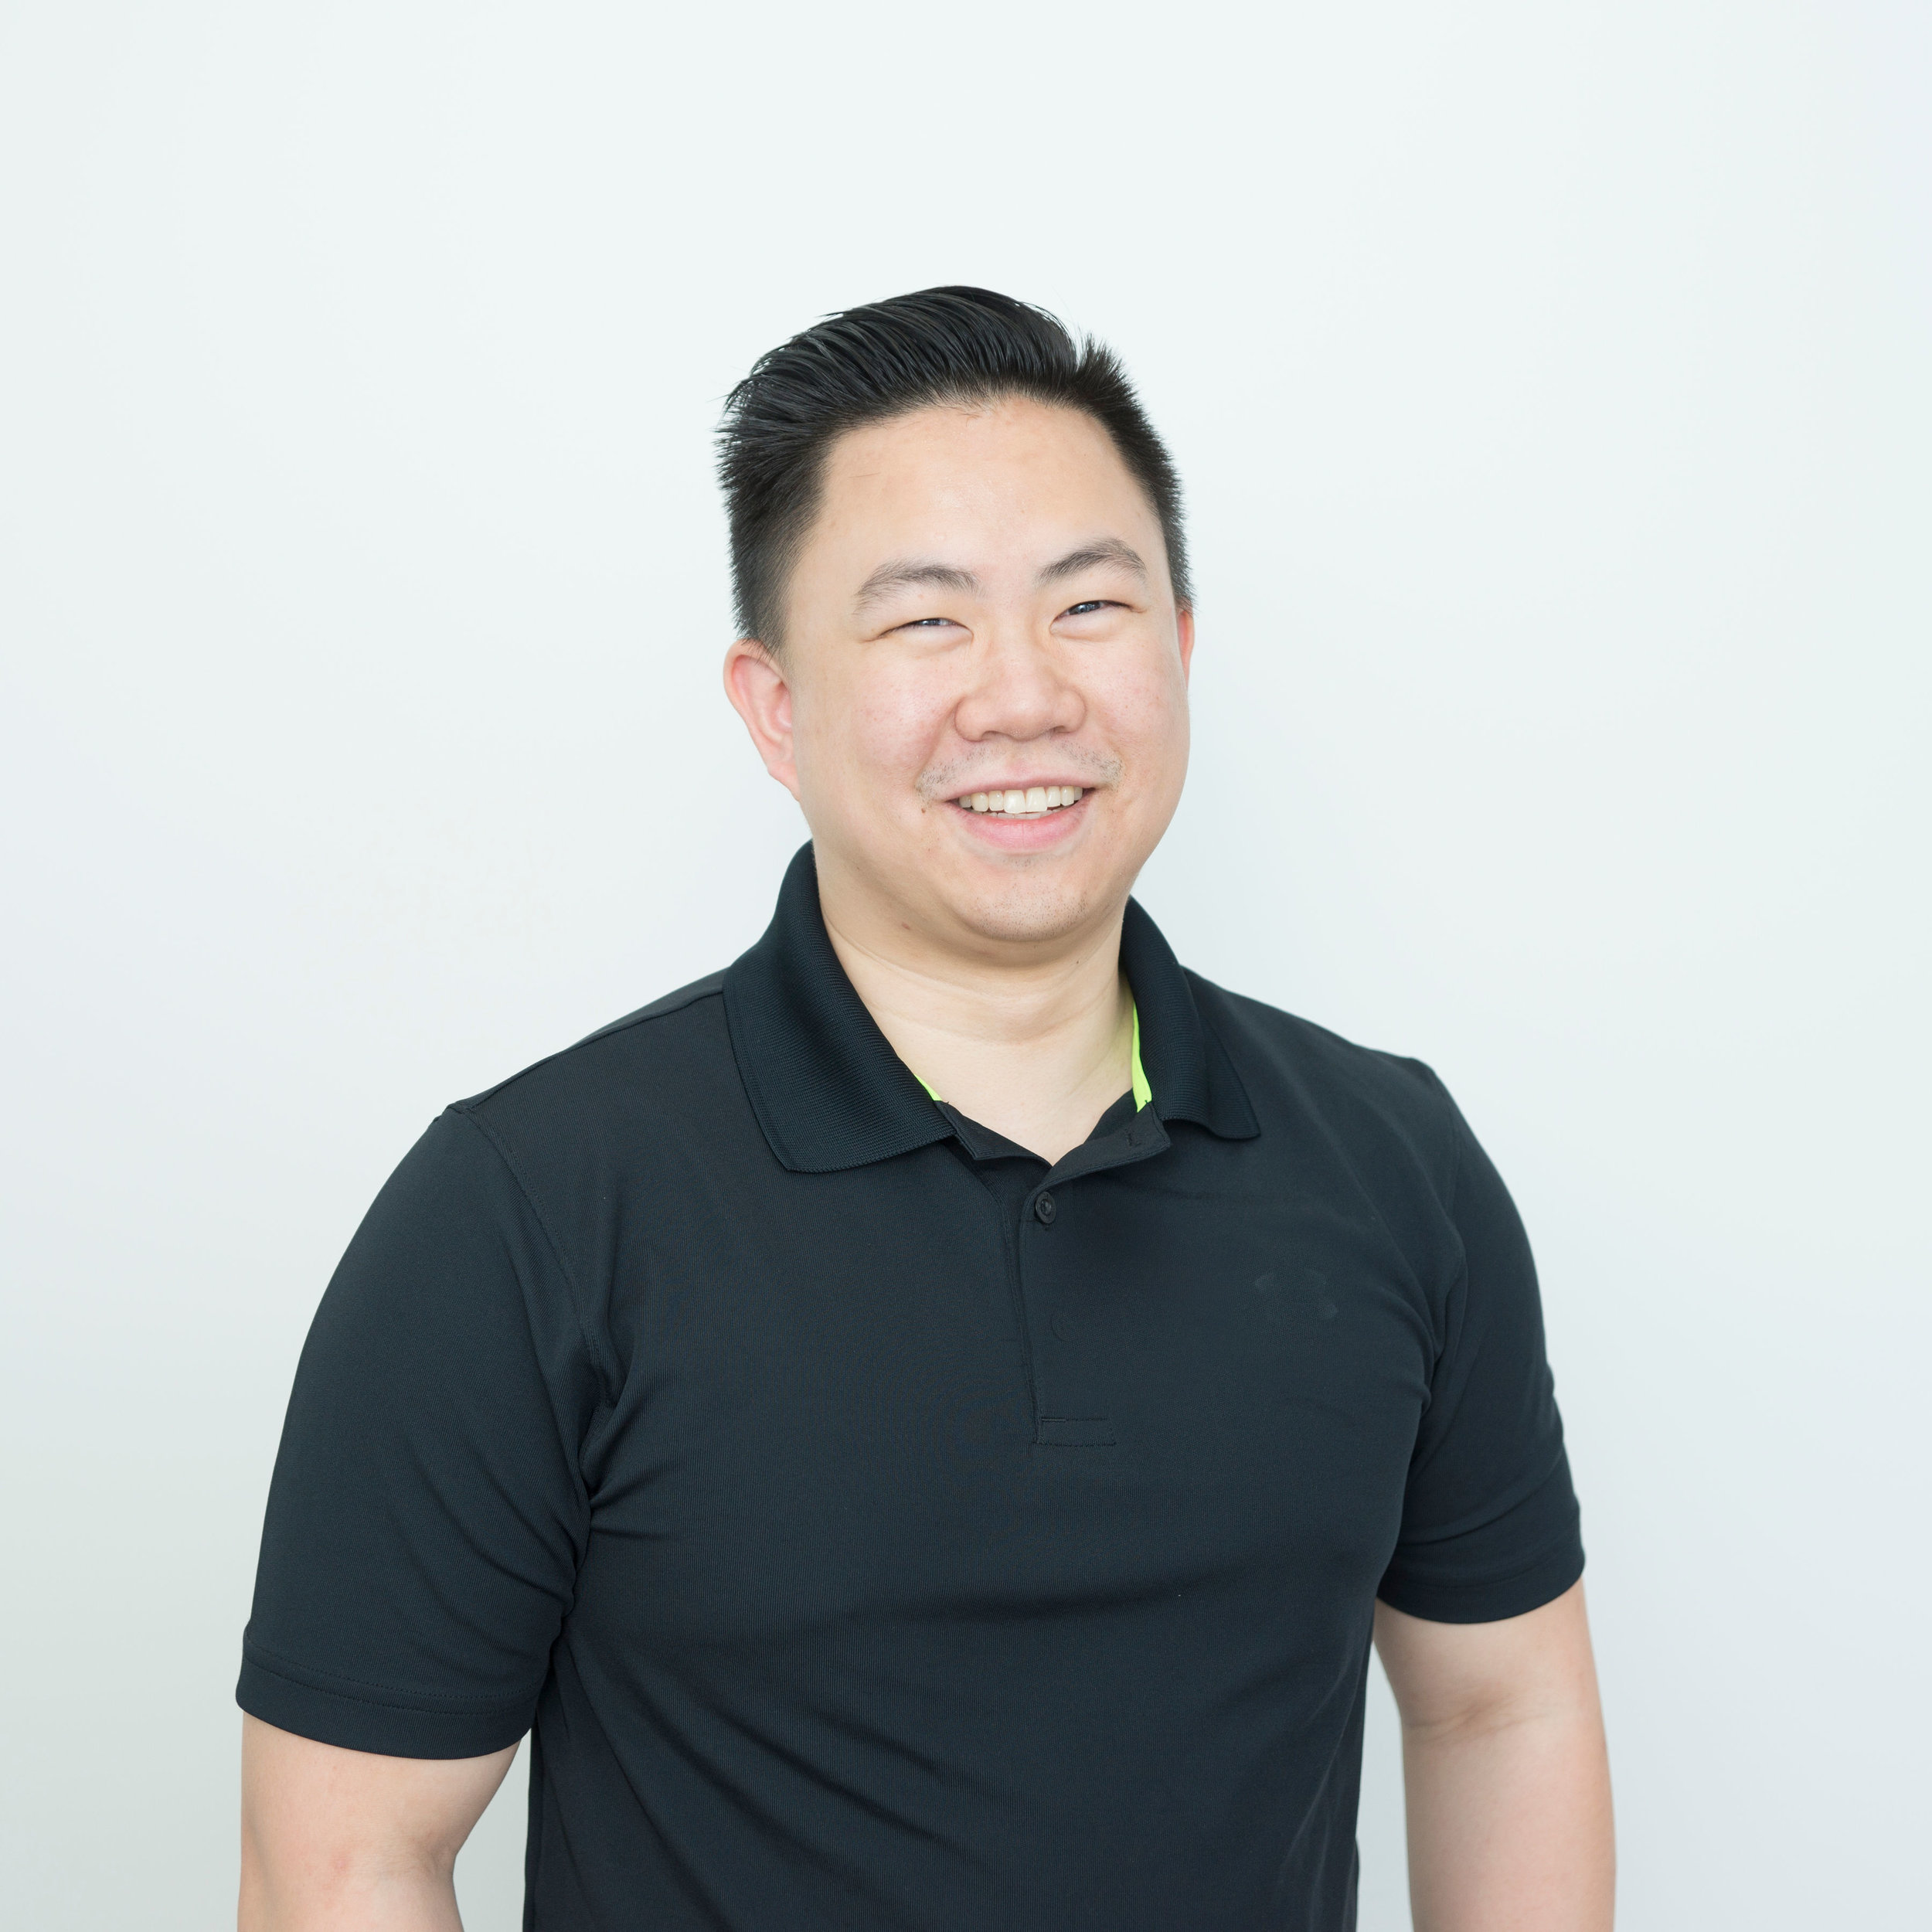 Jon Yeung - After finishing his Bachelors of Kinesiology at UBC, Jonathan has worked as a personal trainer and a kinesiologist where he enjoys being part of a person's wellness journey. He has keen interest in orthopaedic conditions and how muscles and joints are affected. That is why he believes active rehabilitation and massage therapy can aid in the recovery process.Jonathan is currently in final year in the massage therapy program at West Coast College of Massage Therapy and will be writing his board exam in September 2019.You can find Jonathan running in his local neighbourhood, playing tennis or catching the latest movies in theatres.